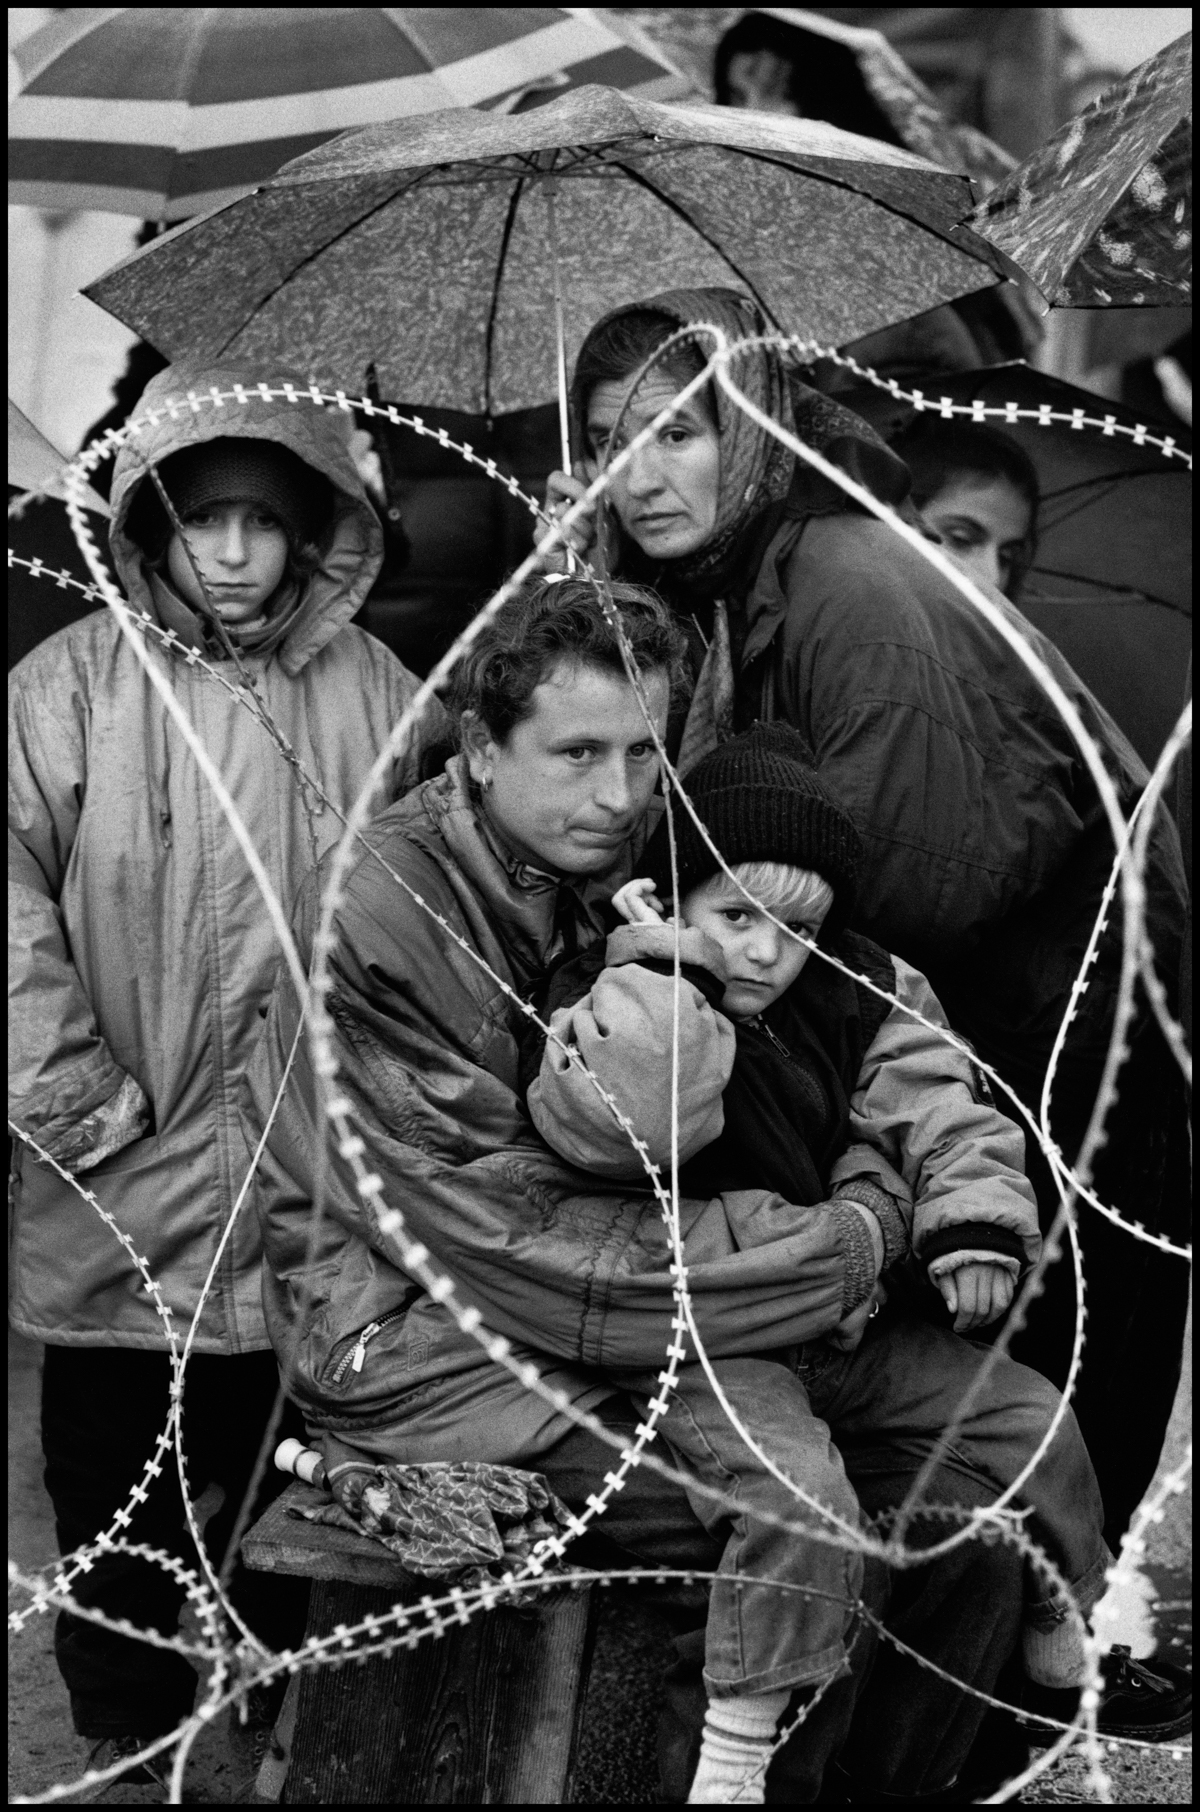 1994, Turanj, Croatia --- A group of pro-Serbian Muslim refugees, probably a family, sit behind barbed wire in a refugee camp in Turanj, Croatia